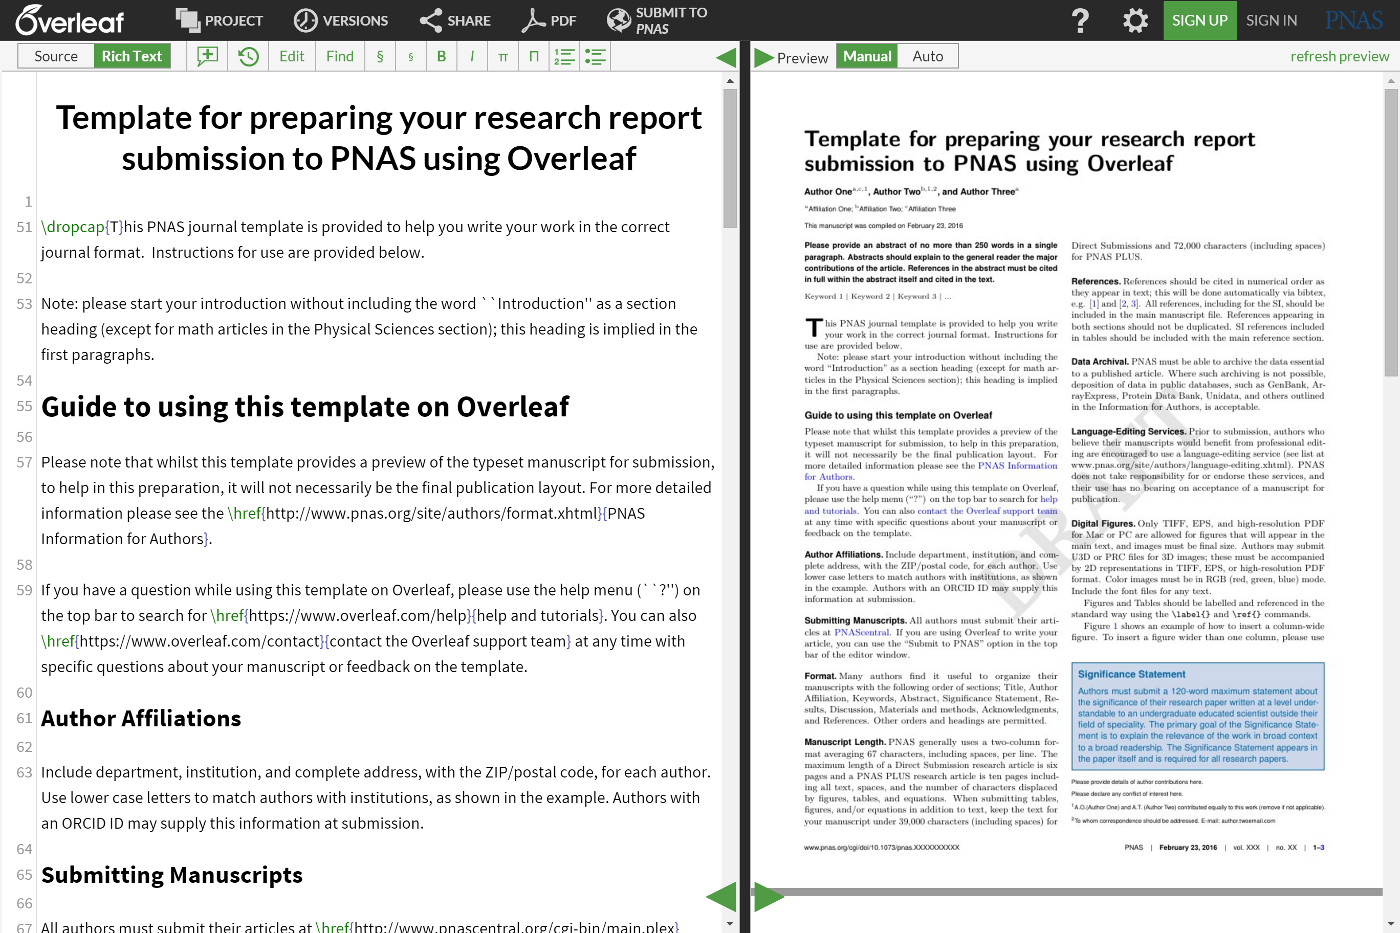 PNAS LaTeX author template on Overleaf